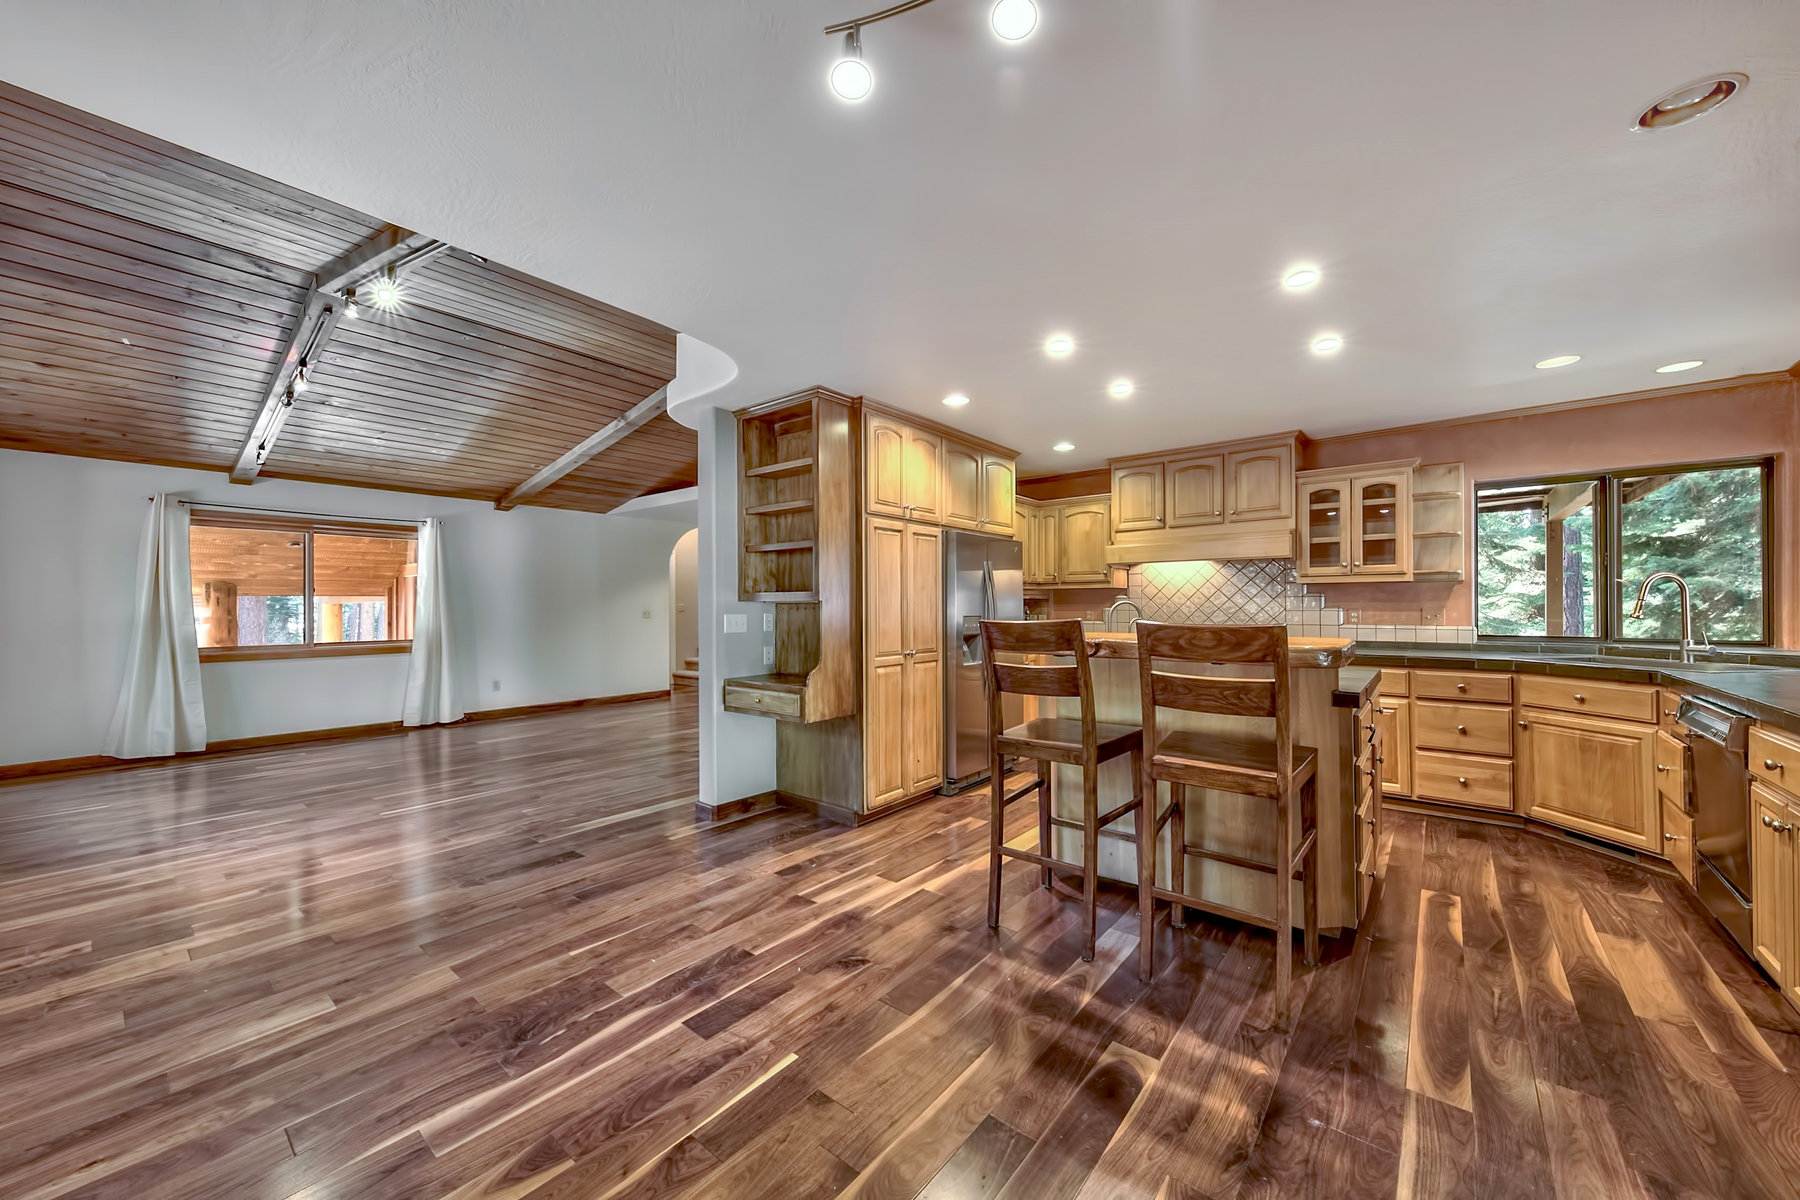 Additional photo for property listing at 8841 Dolly Varden Ave, Kings Beach, CA 96143 8841 Dolly Varden Ave Kings Beach, California 96143 United States